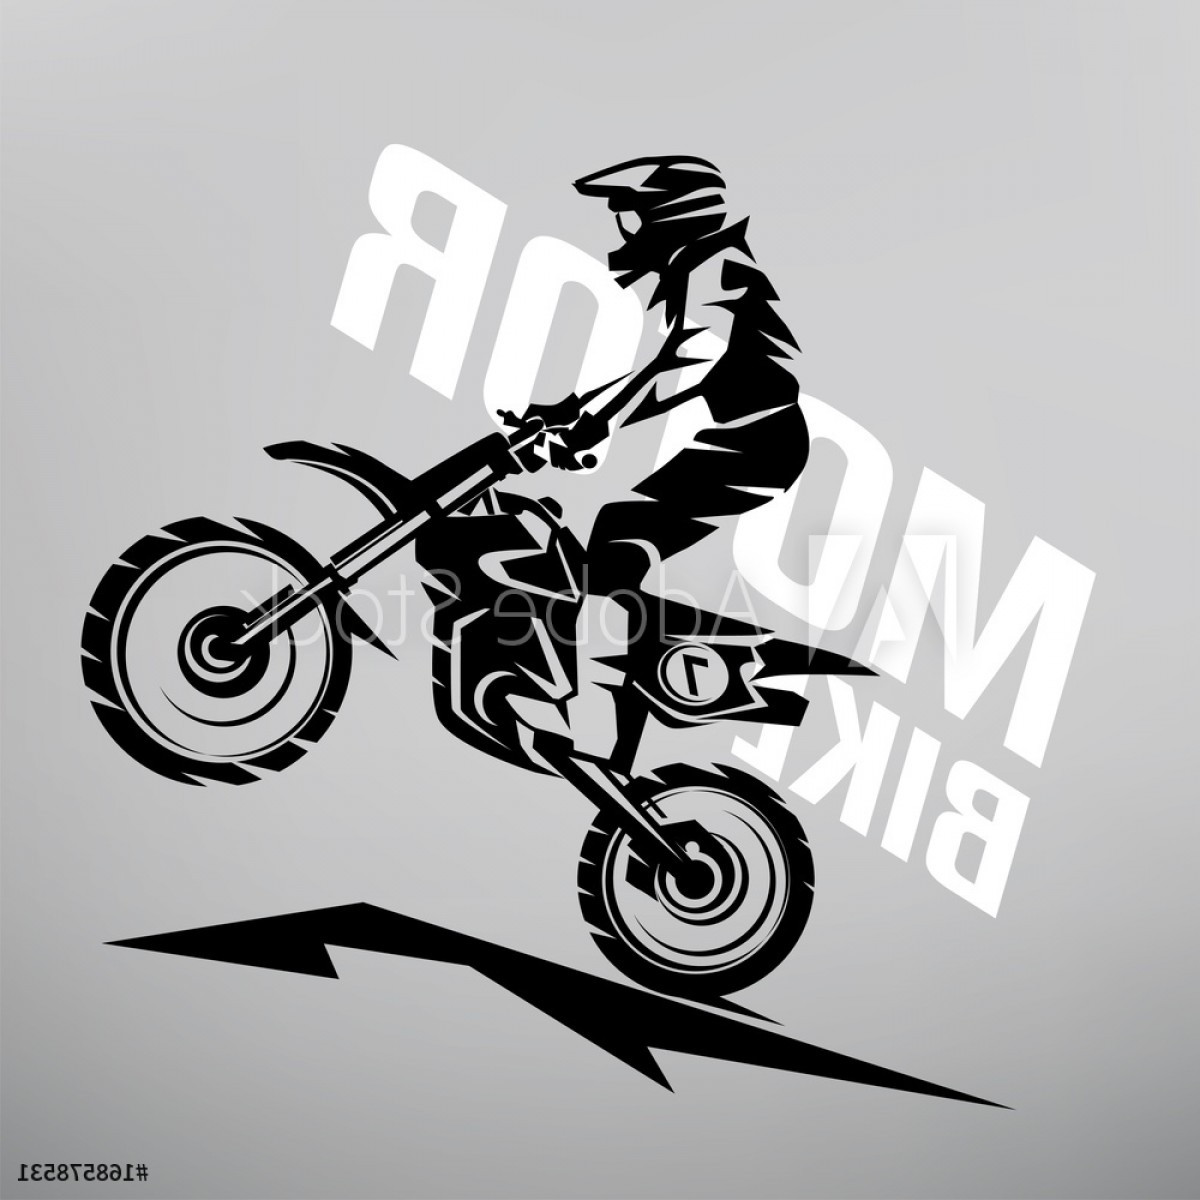 Motocross Number Plate Vector Art: Motocross Stylized Vector Symbol Design Elements For Logo Template F